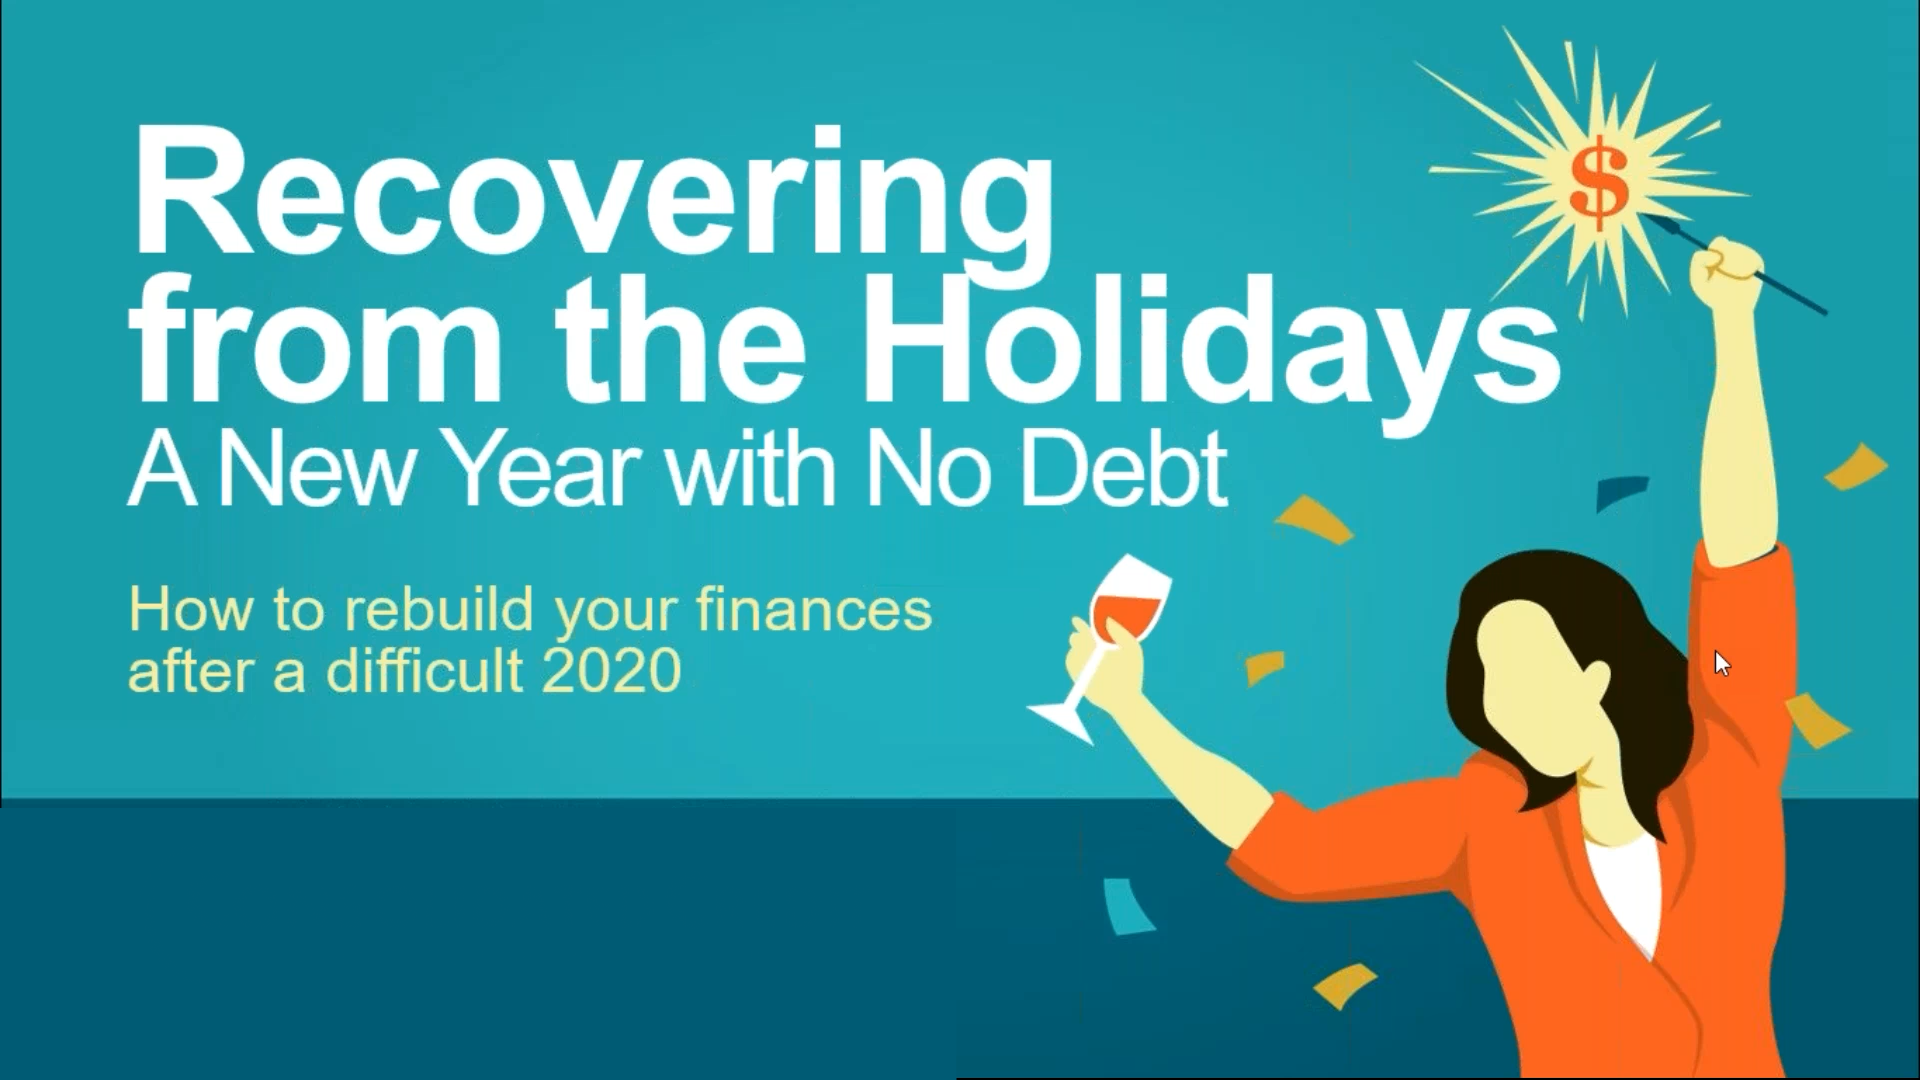 Recovering from the holidays. A new year with no debt.